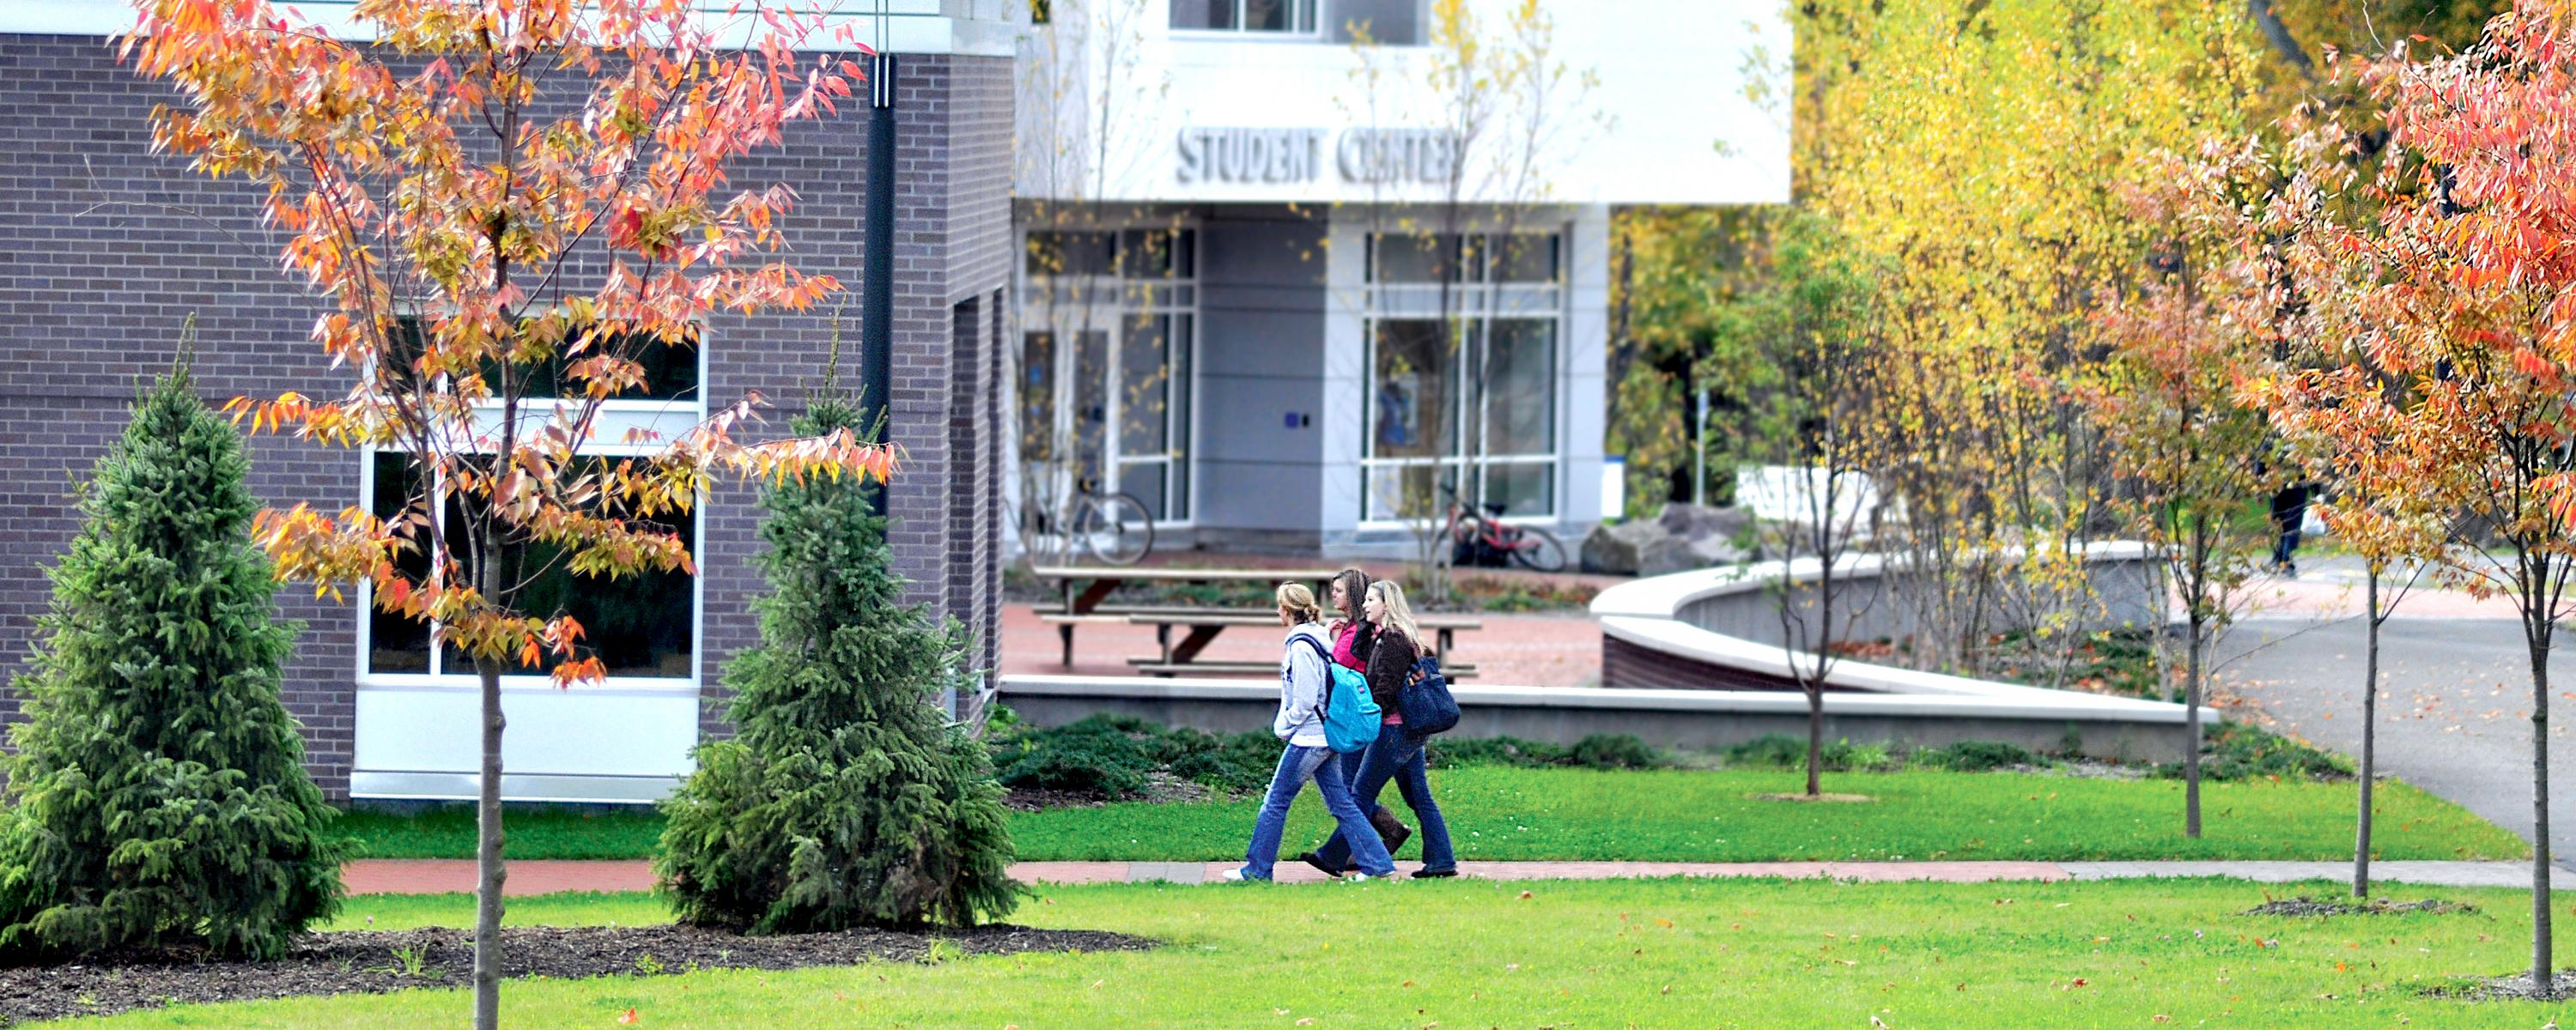 Students walk into Student Center on Utica campus